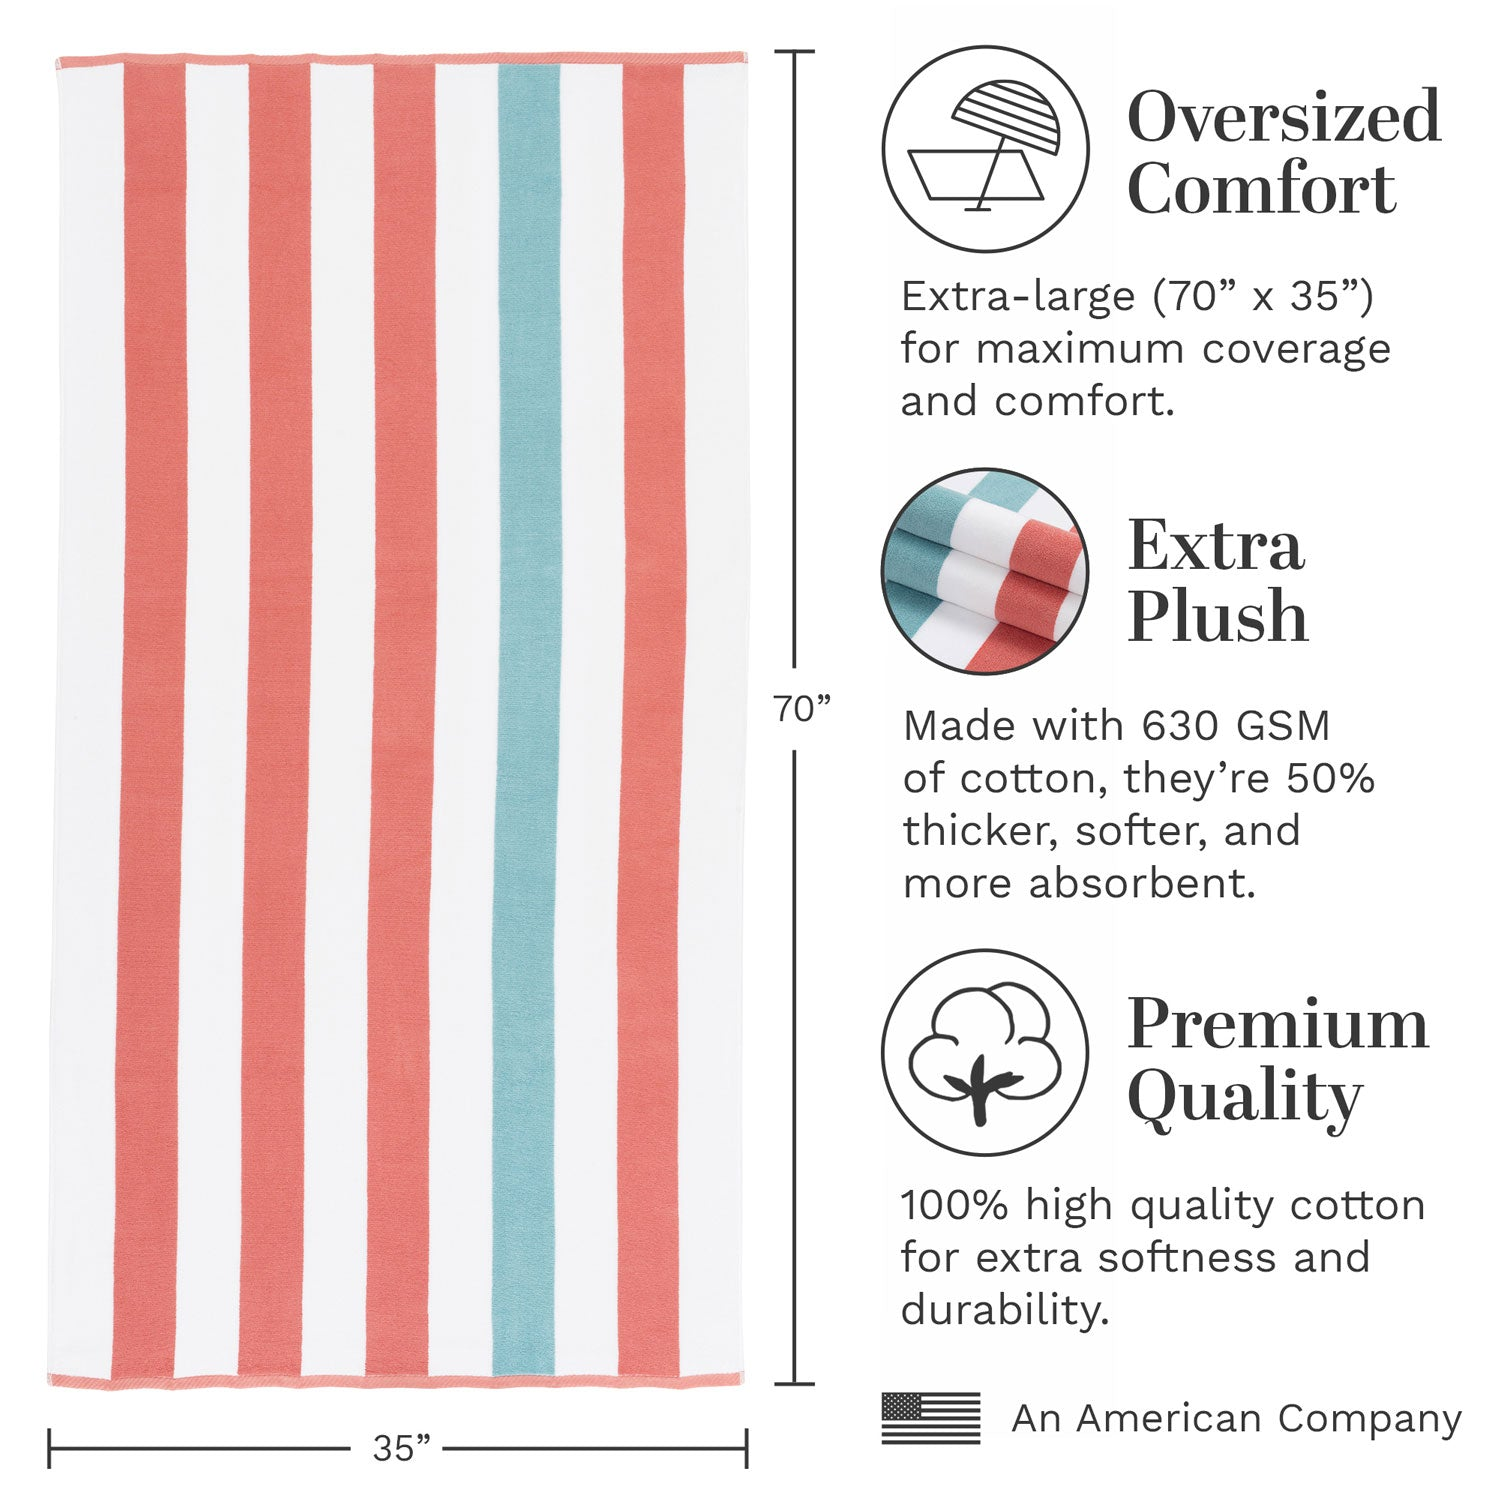 Infographic of coral pink cabana beach towel highlighting that it's extra plush, premium quality, and oversized.